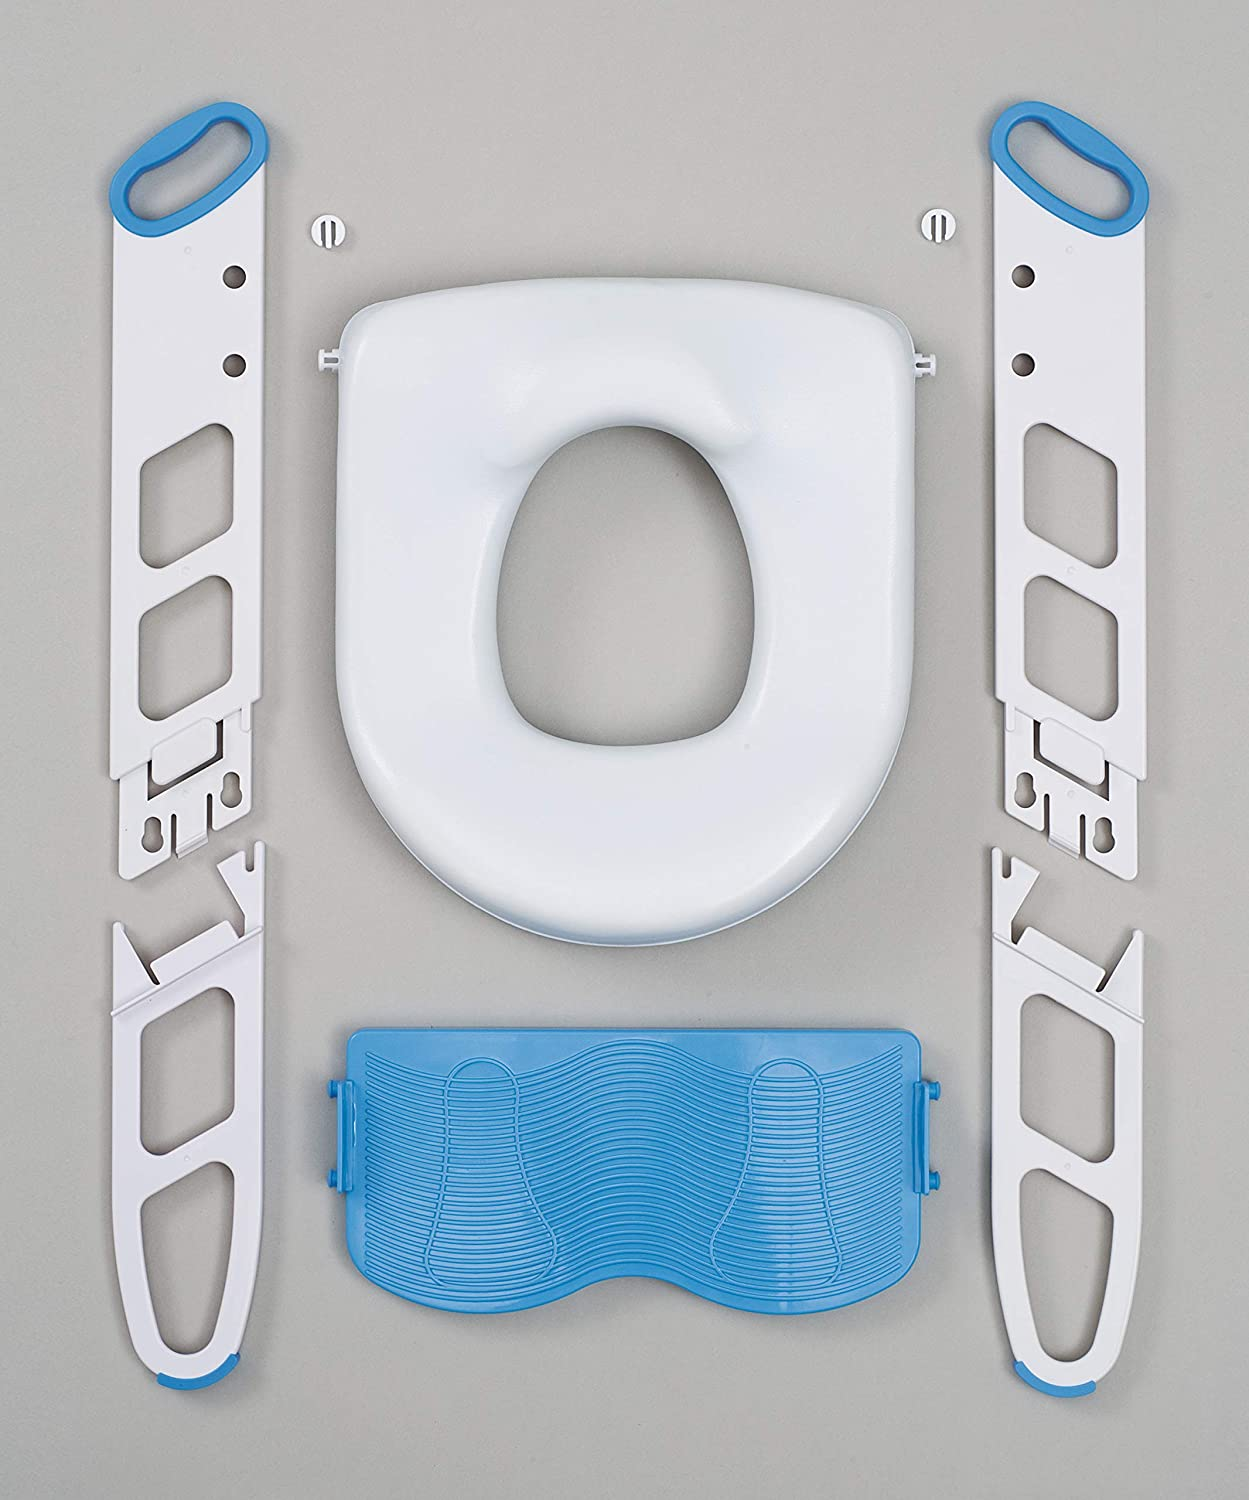 Mommys Helper Cushie Step Up Potty Seat